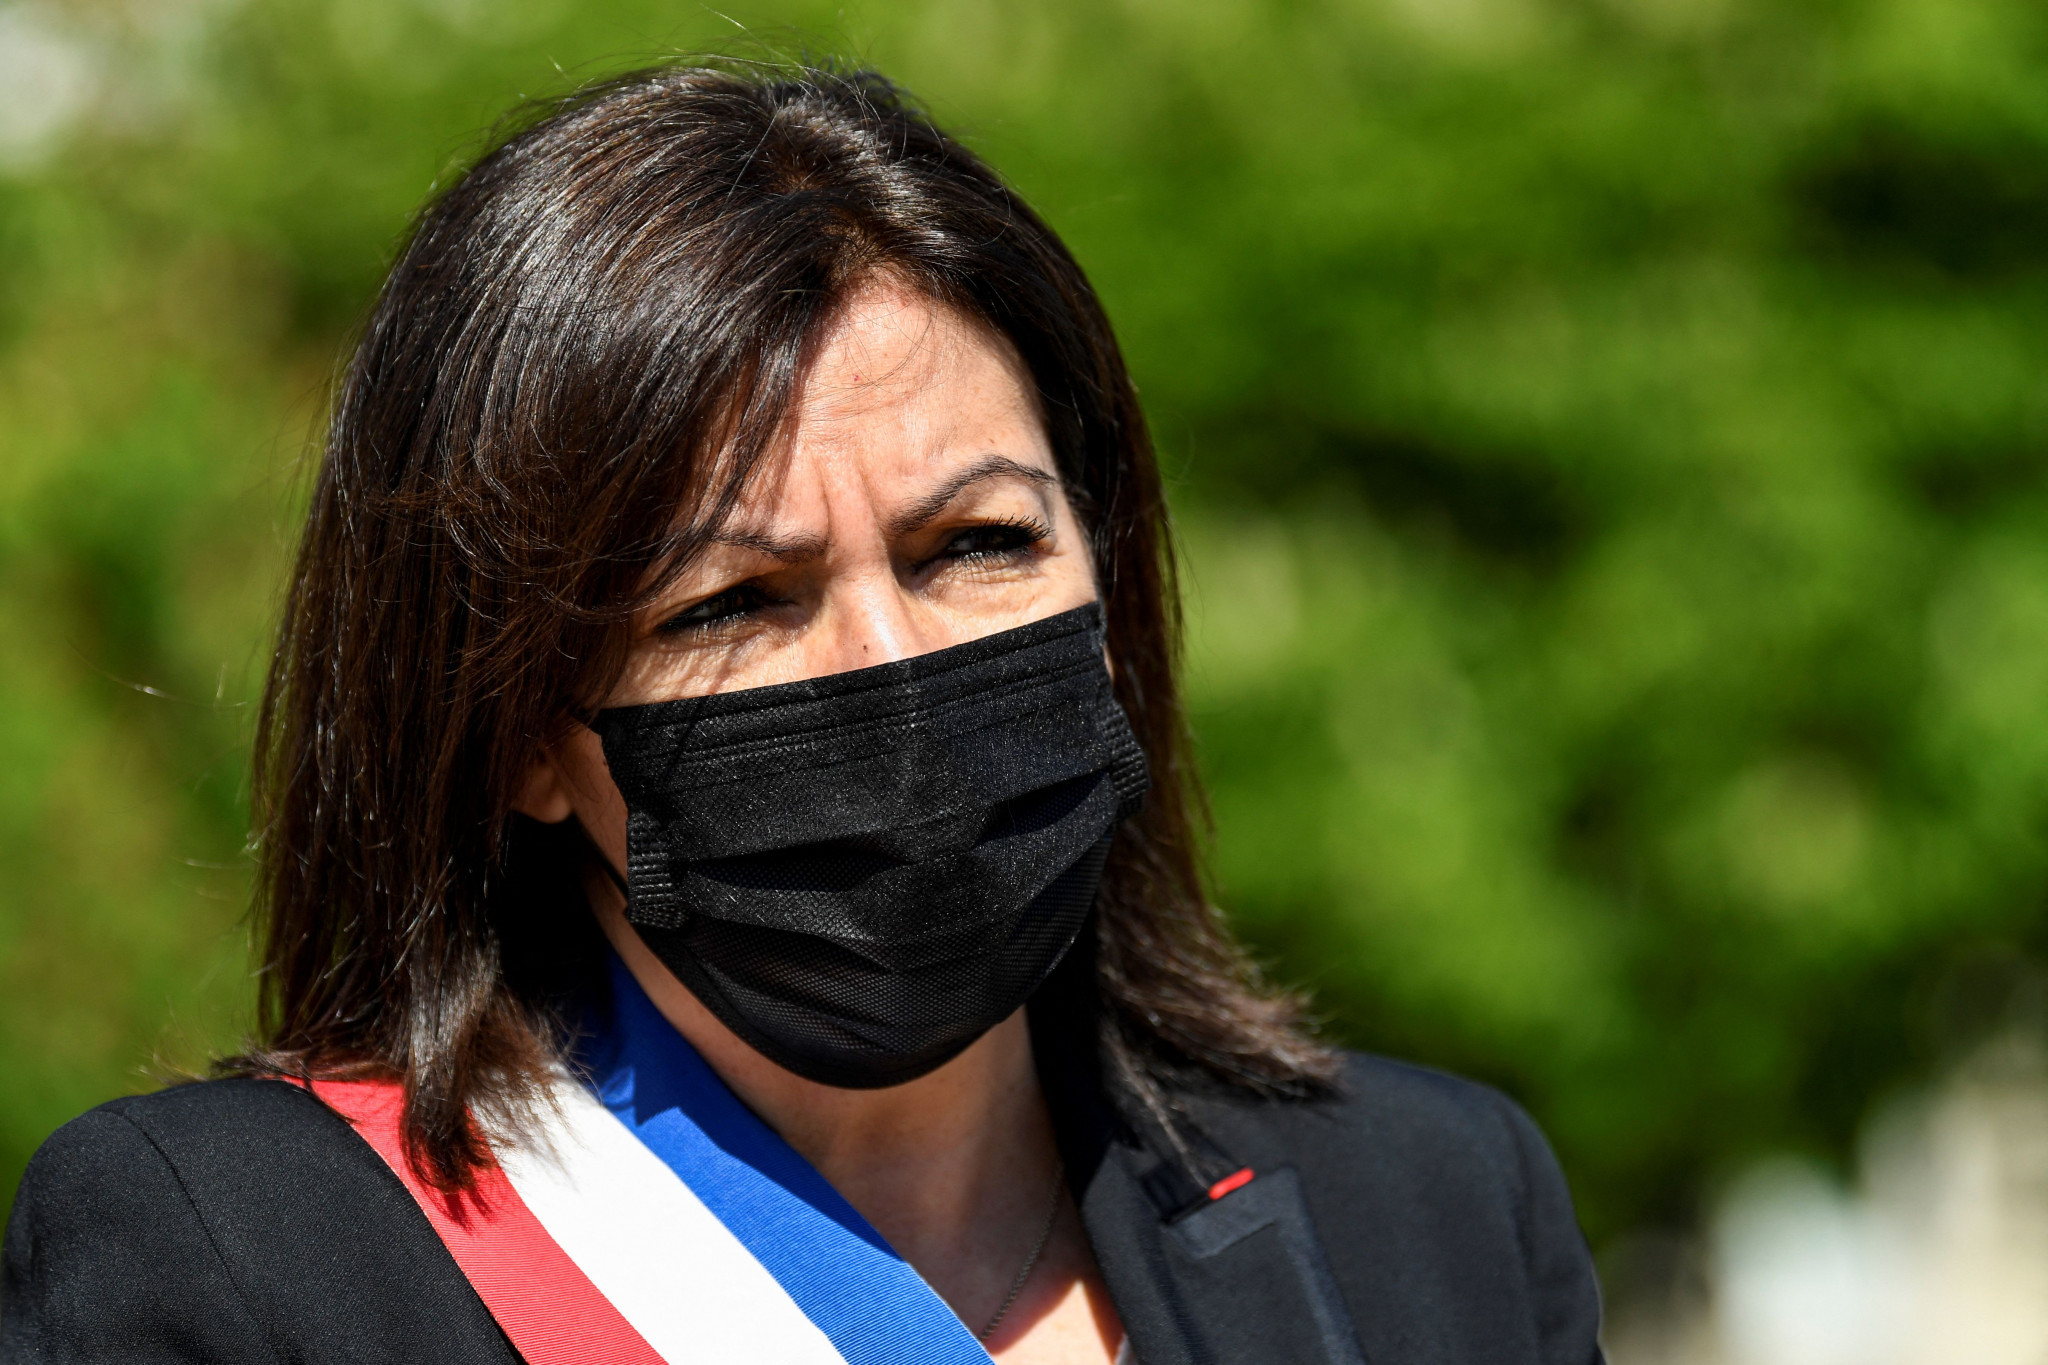 Paris Mayor Hidalgo tipped as potential contender in French Presidential race